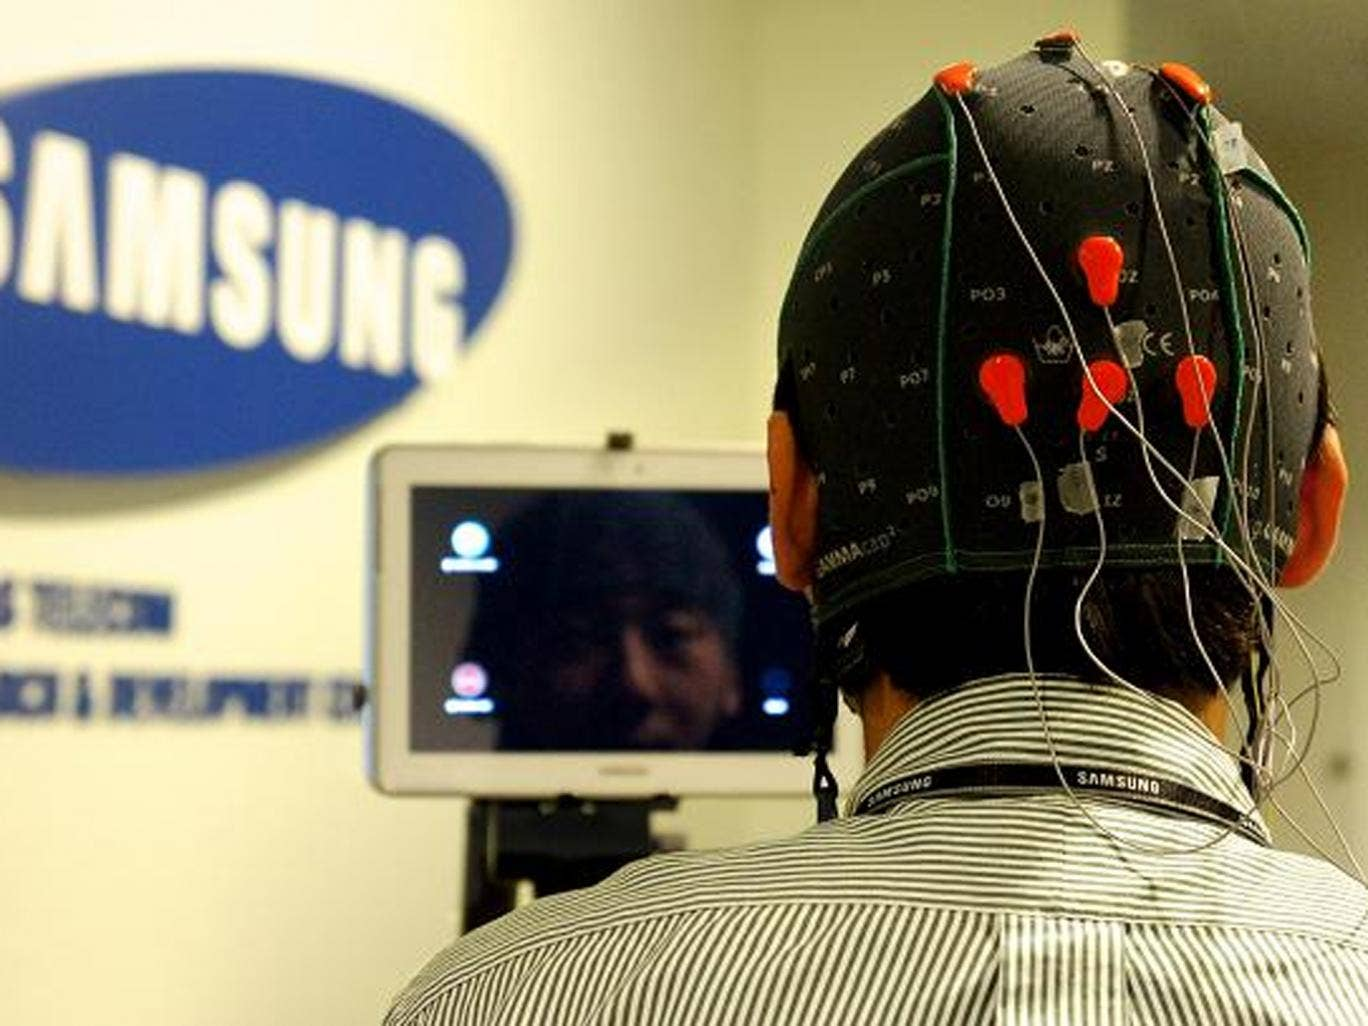 The user wears a cap fitted with EEG electrodes to monitor brain activity